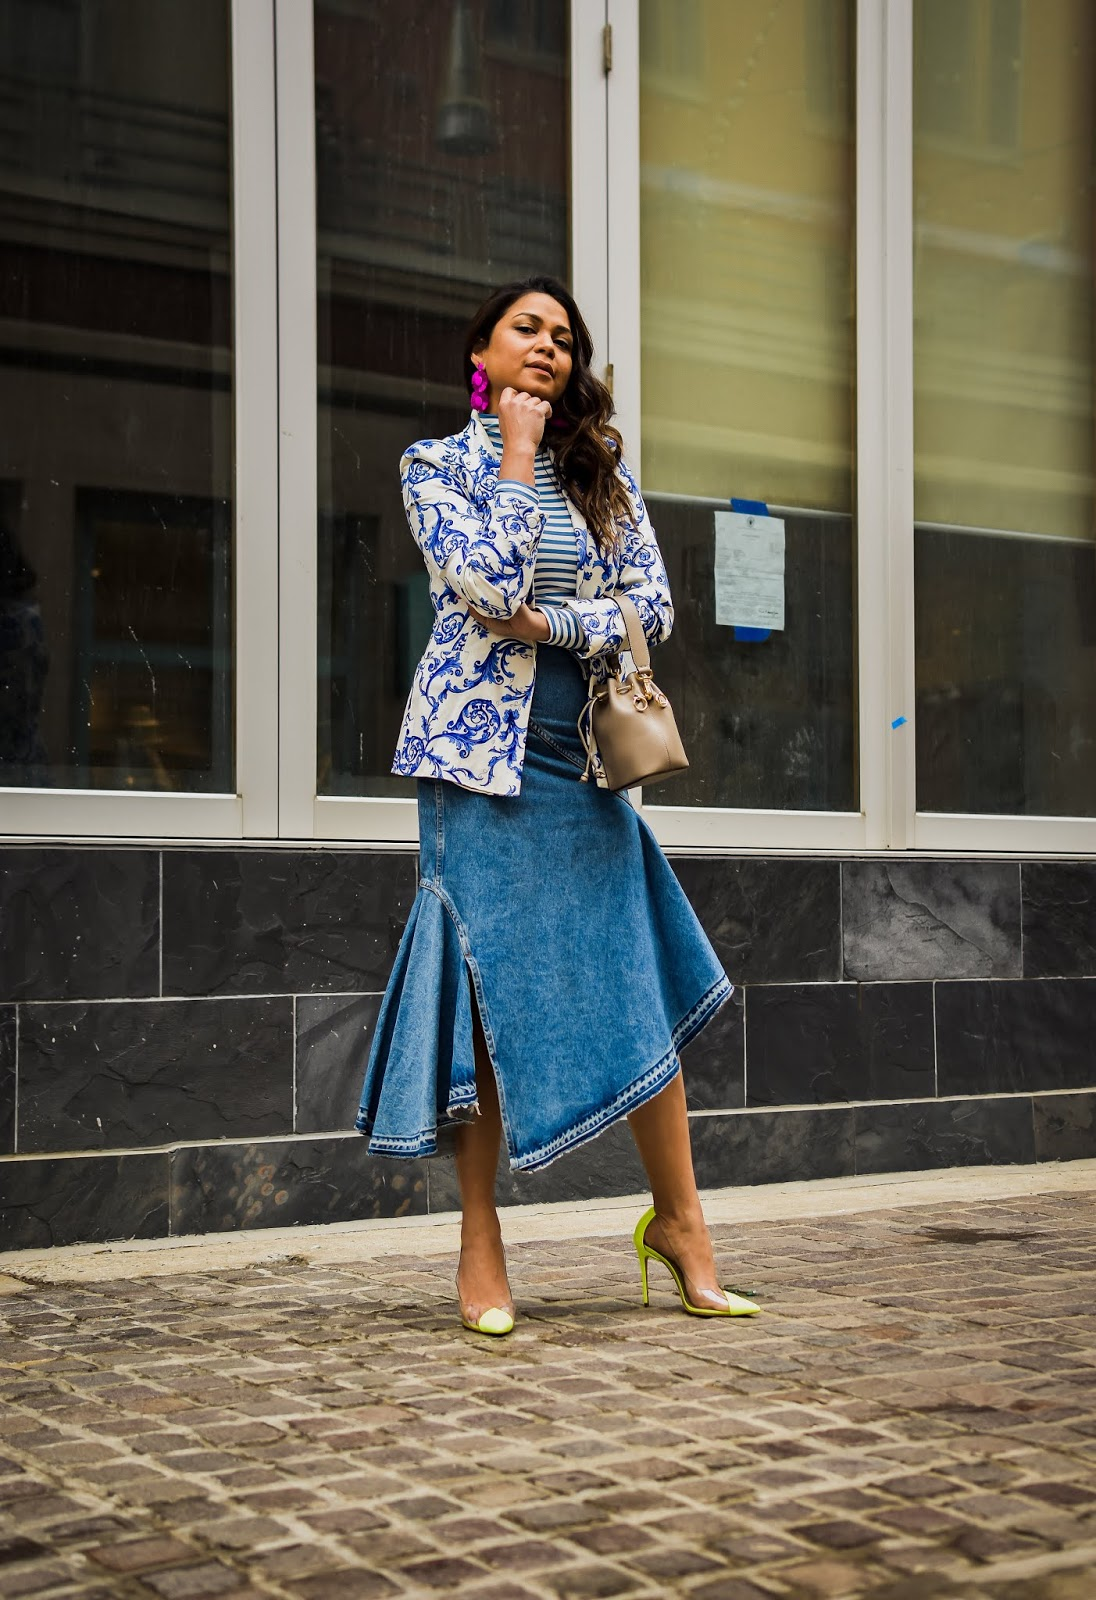 print on print, monochromatic outfit, fshion, style, denim ruffle skirt, origami skirt, street style, myriad musings, saumya shiohare, bodysuit